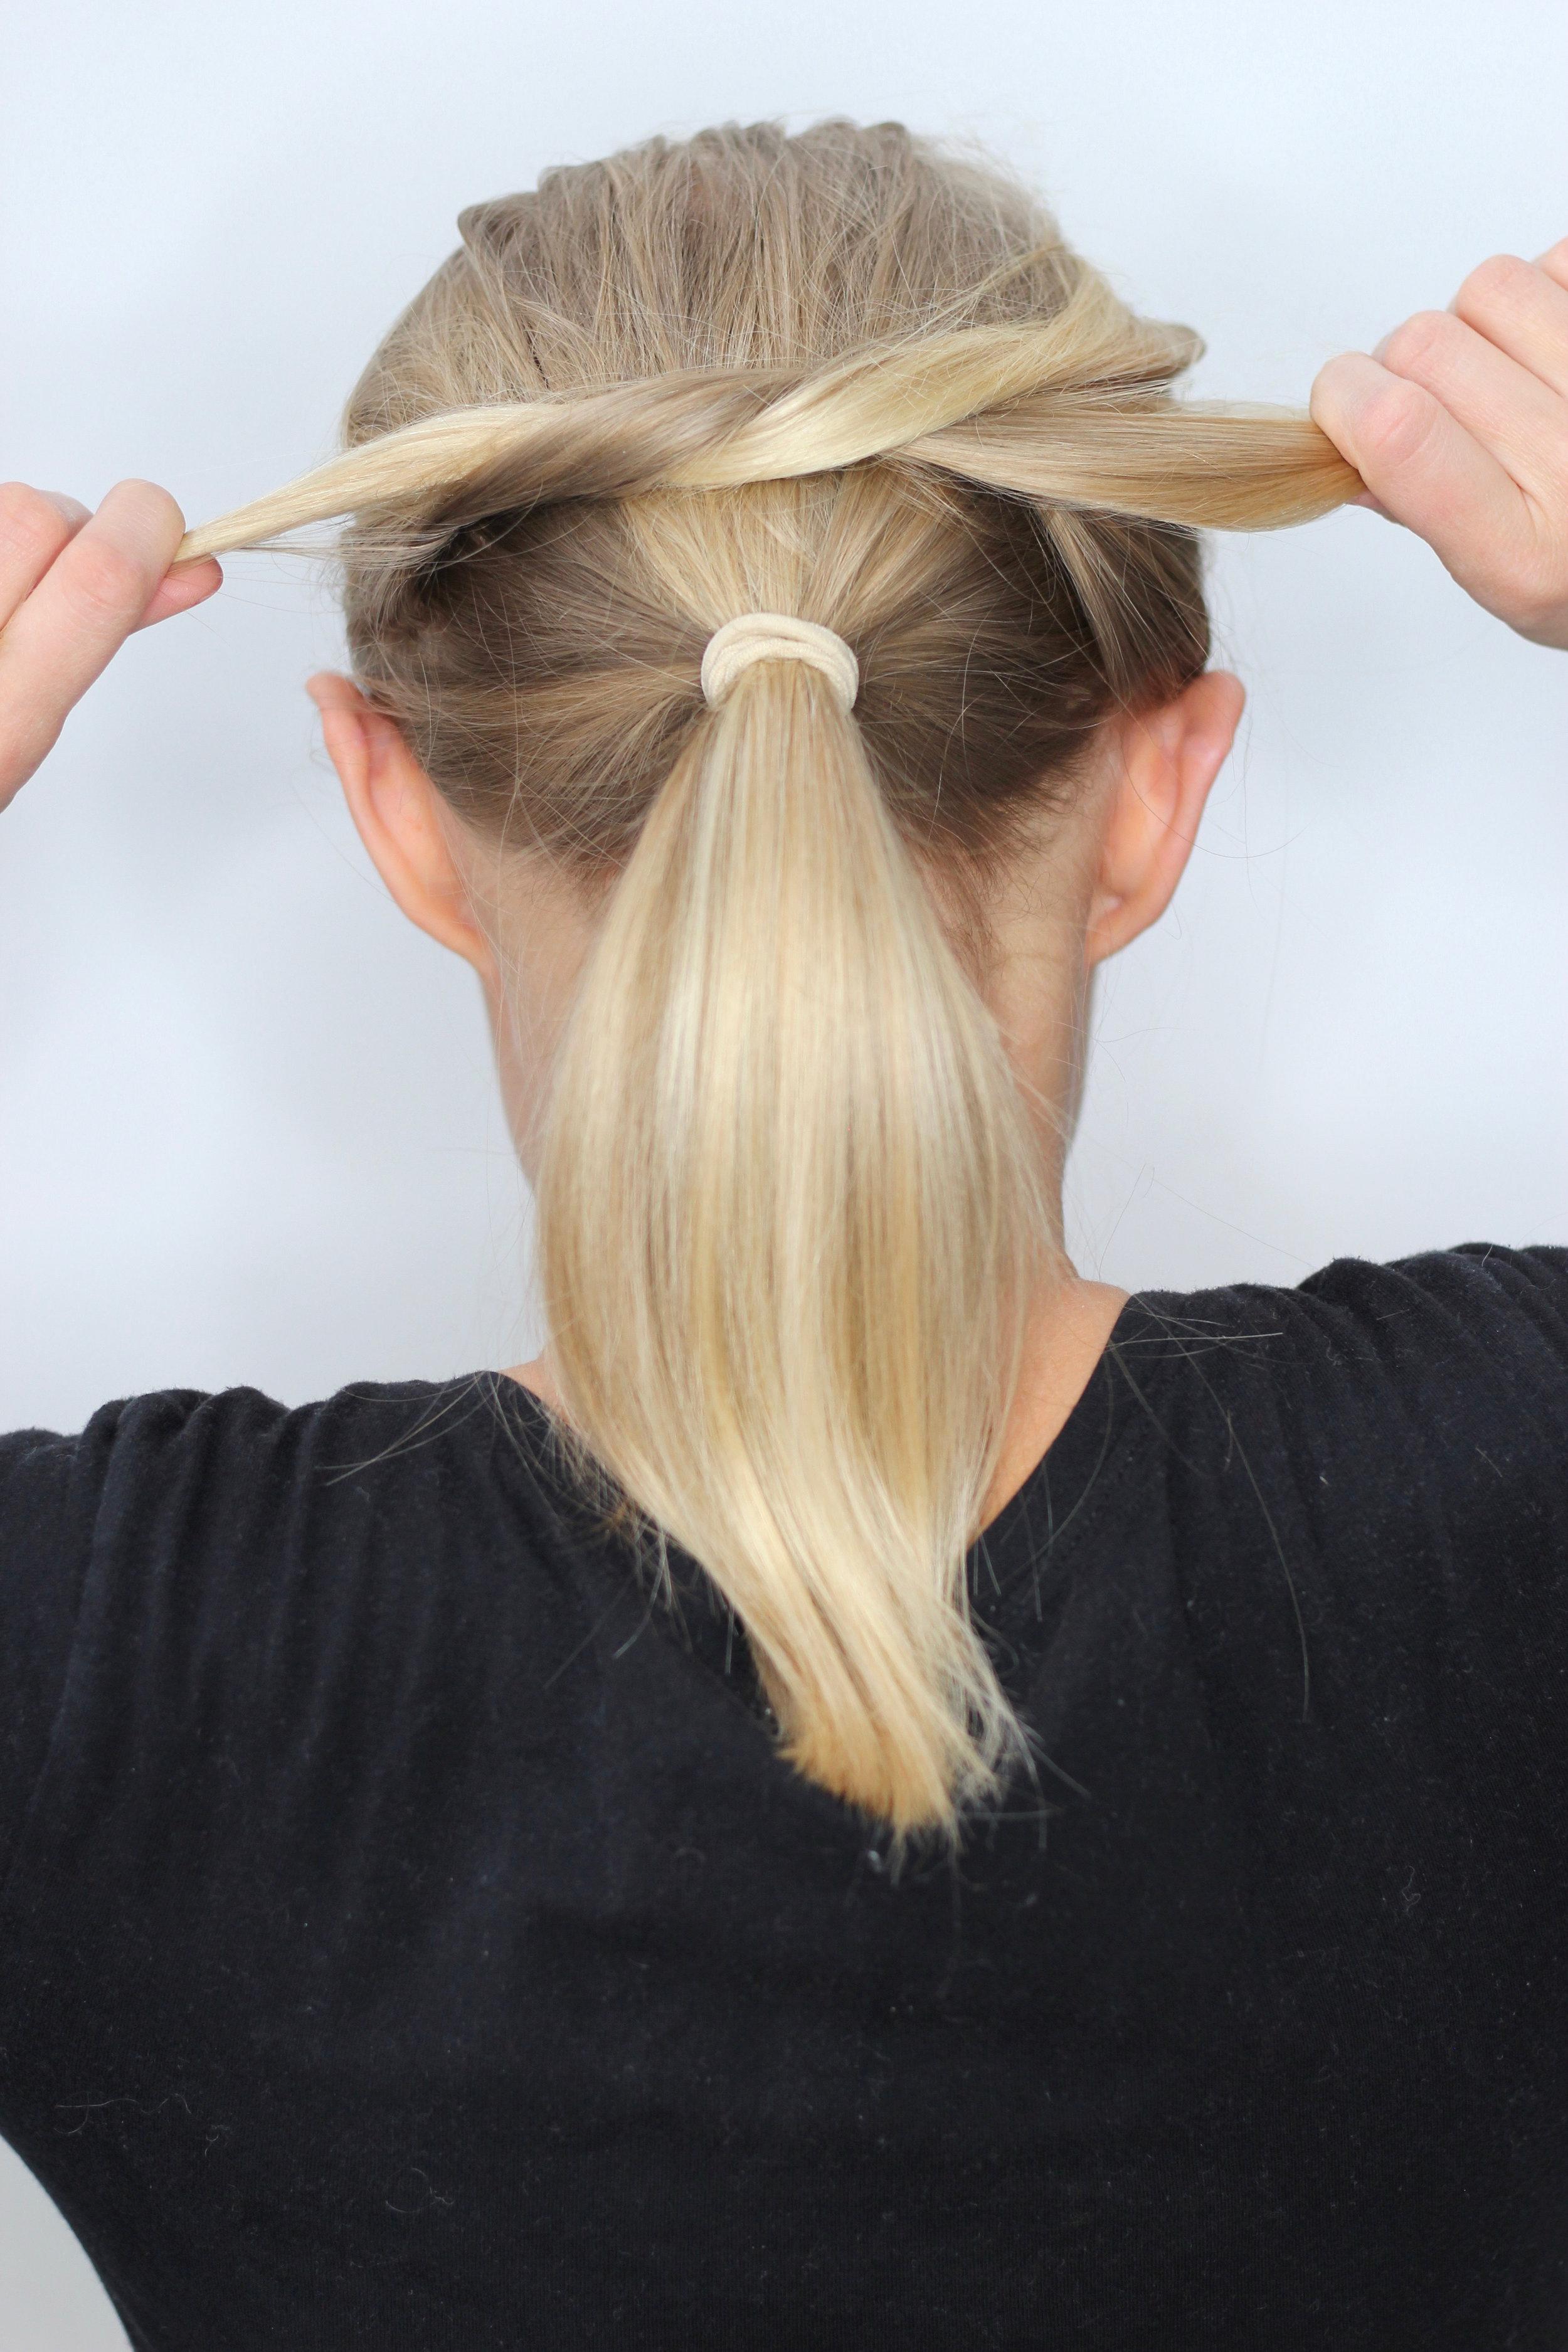 STEP 2 - Create a knot above the ponytail, using the two side sections.